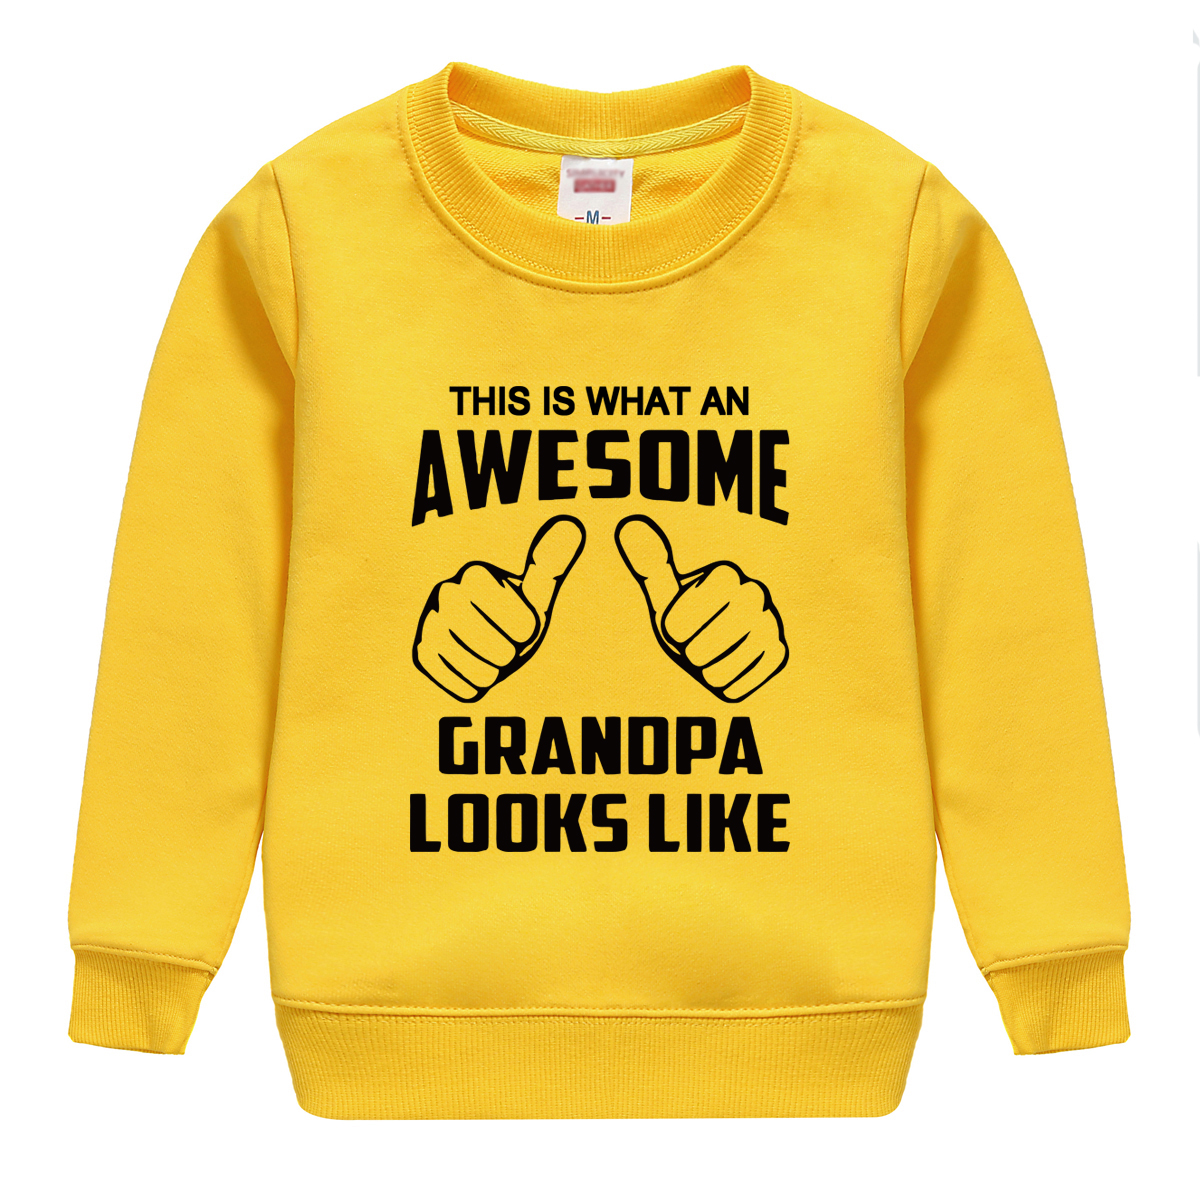 "HTB1m.E5lL2H8KJjy0Fcq6yDlFXaW - ""this is what an awesome granopa  looks like "" printing 2018 new fashion cotton sweatshirt baby boy clothing top tees for kids"